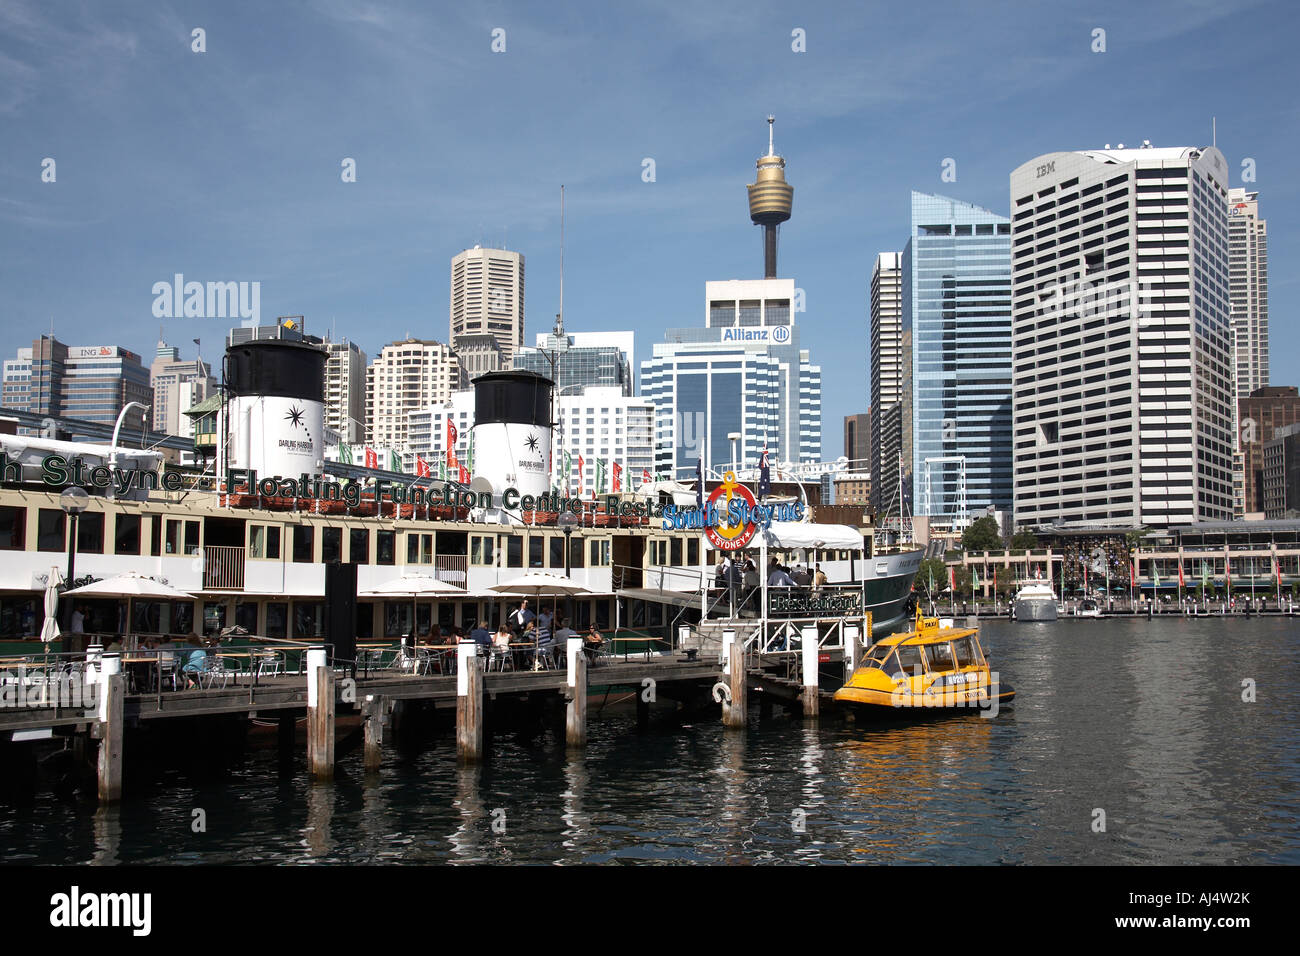 South Steyne floating function centre restaurant in Darling Harbour Sydney New South Wales NSW Australia - Stock Image